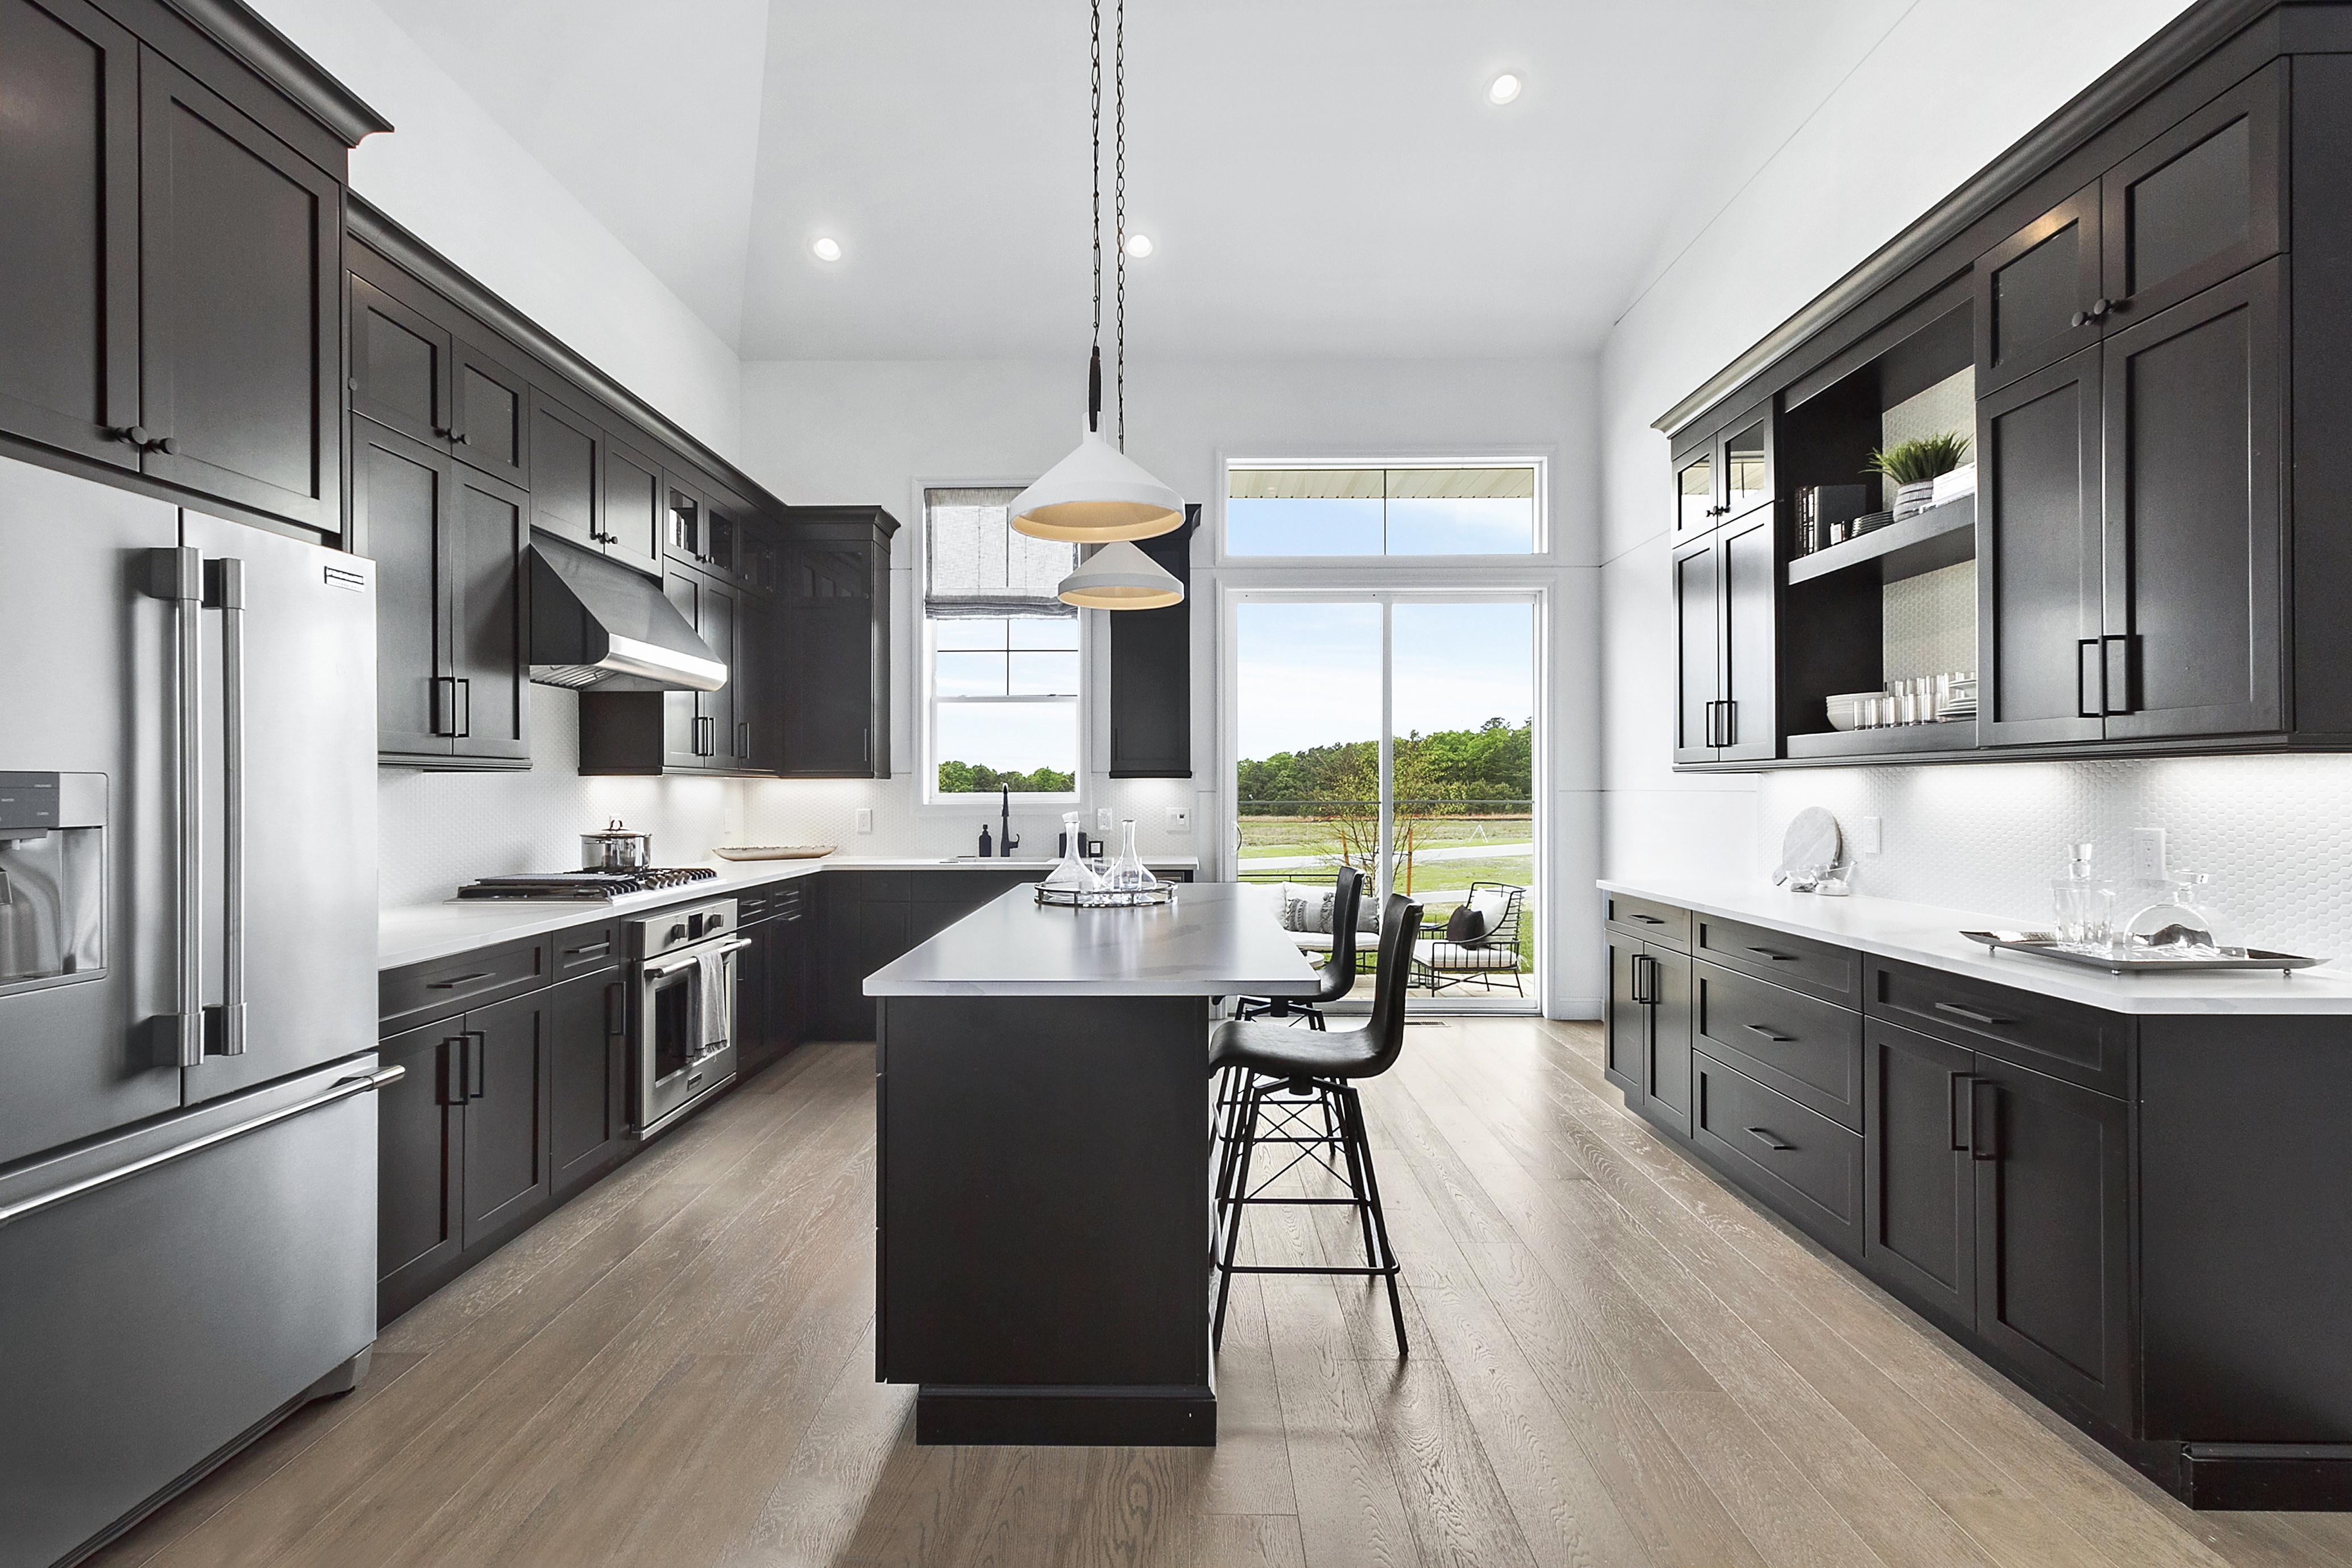 Kitchen featured in The Eastbourne By Beechwood Homes in Nassau-Suffolk, NY